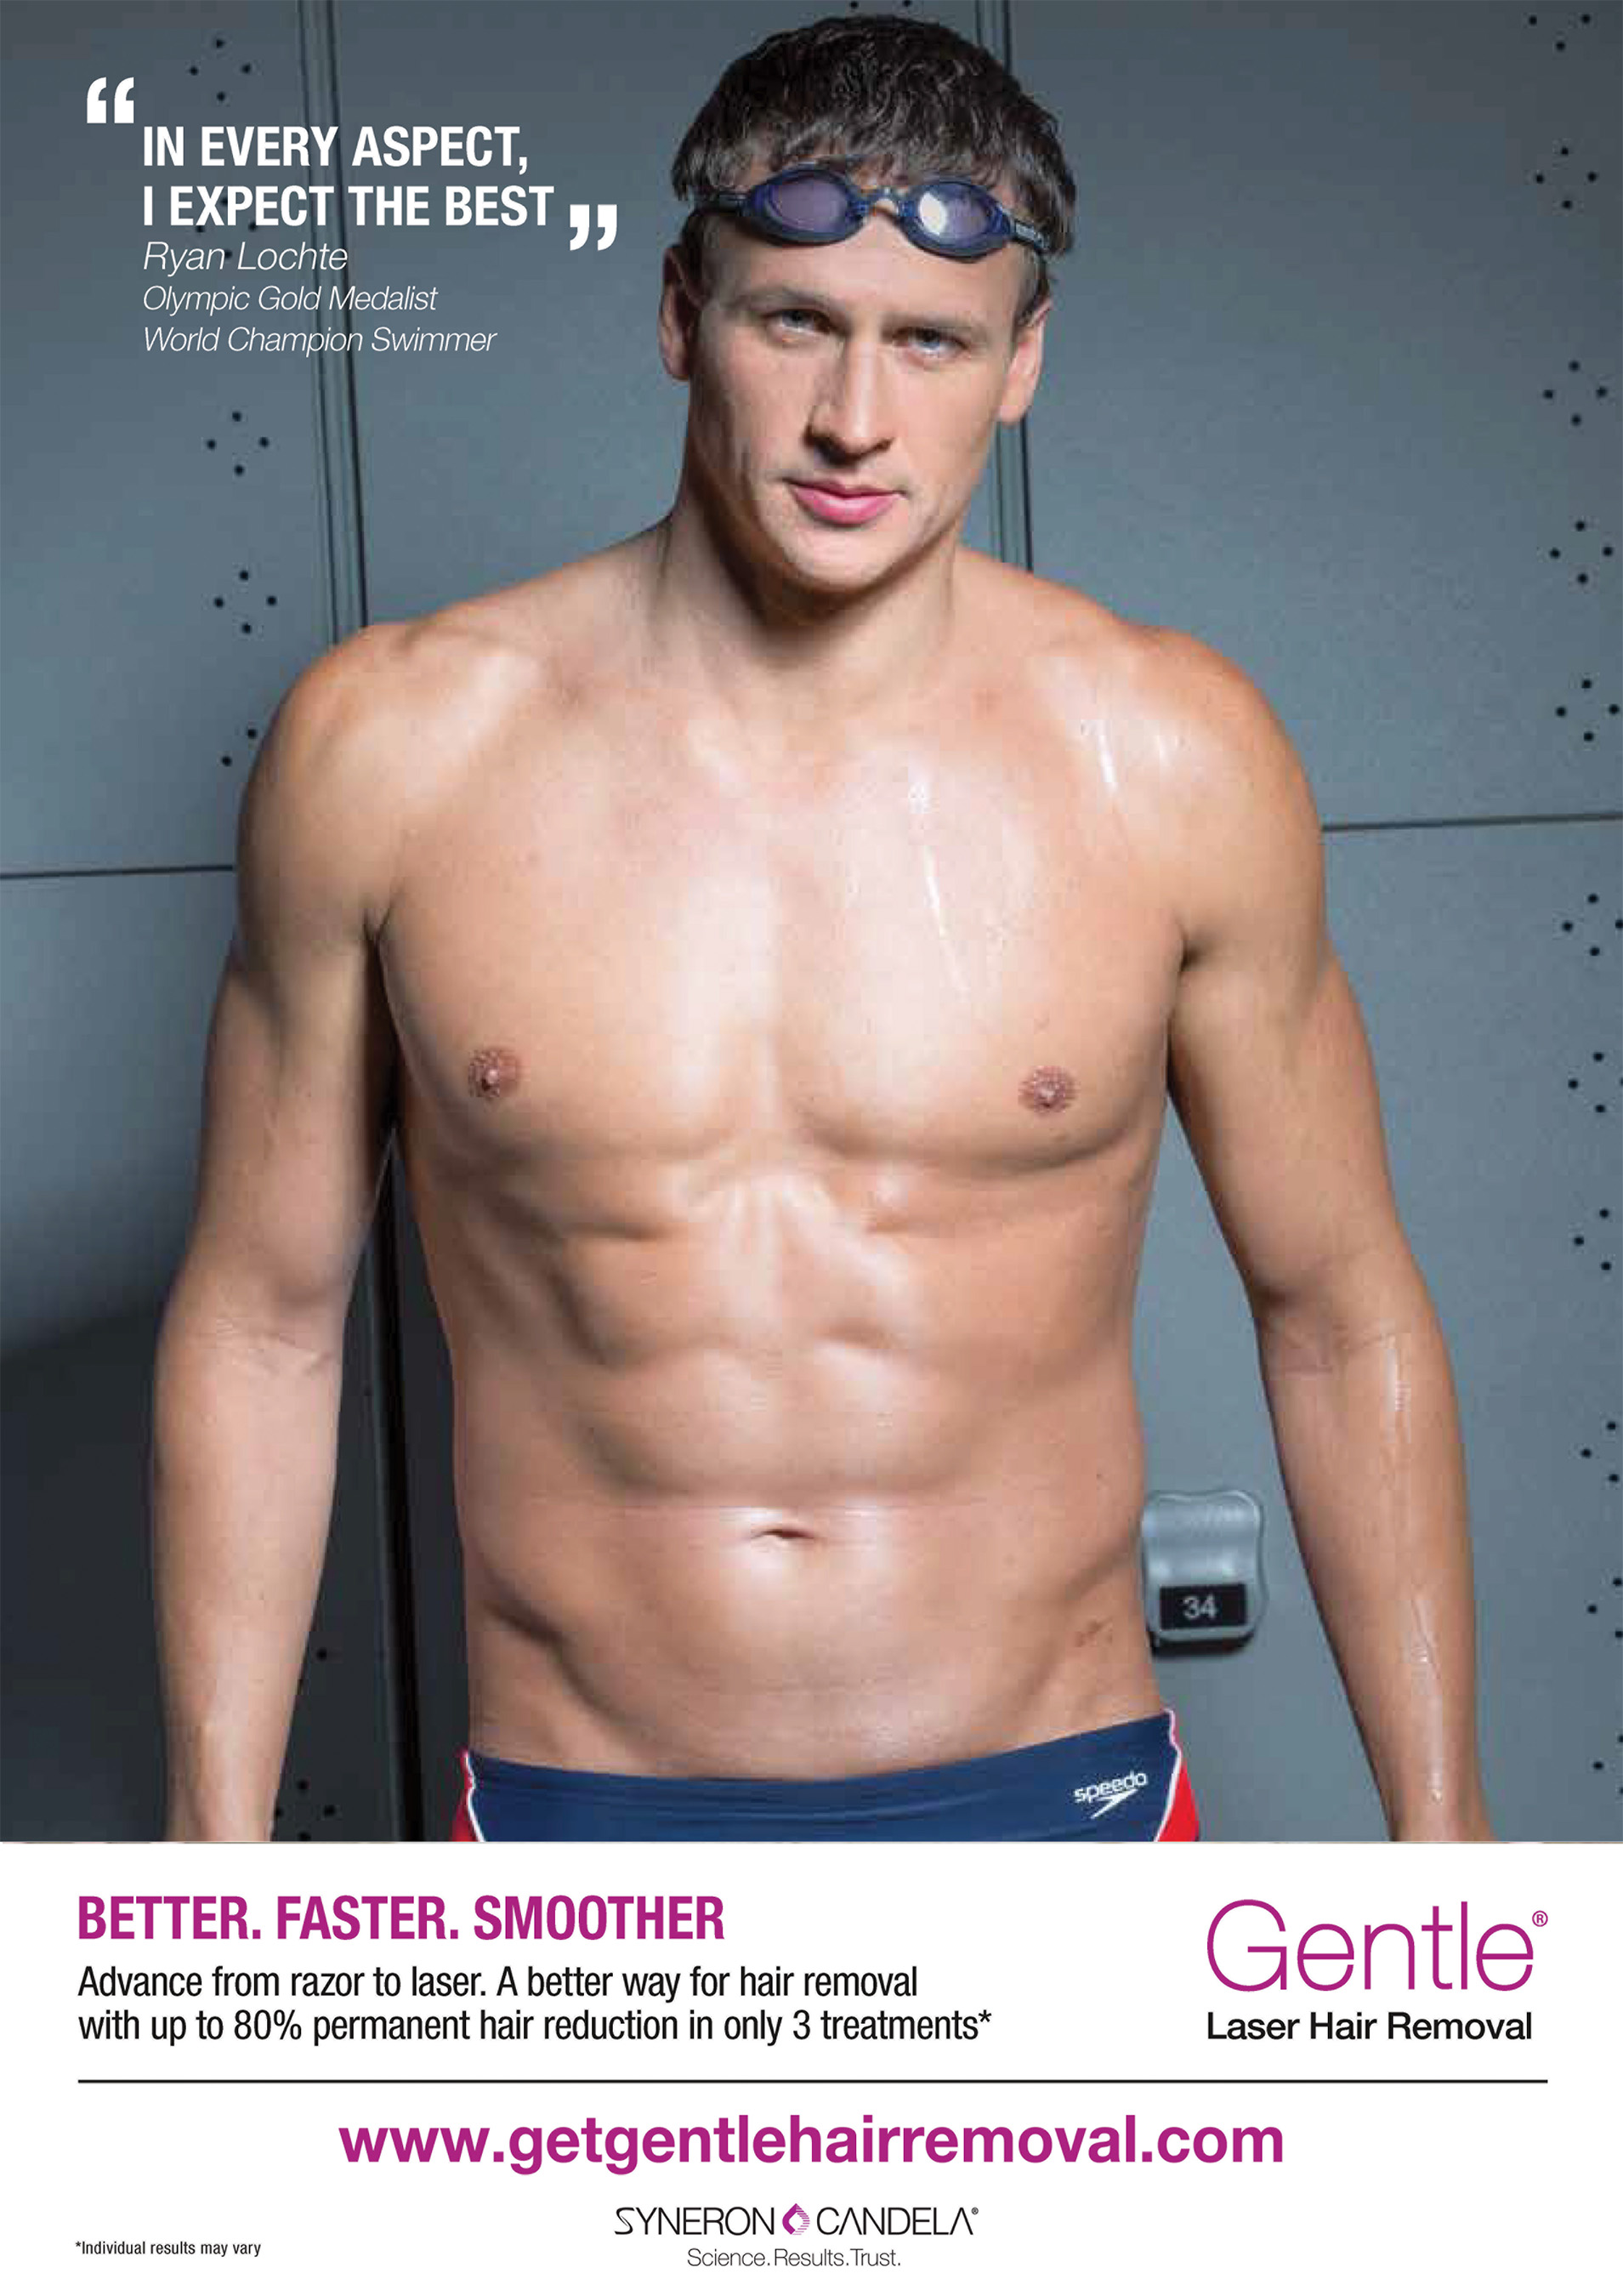 Ryan Lochte expects the best in every aspect of his life – including his hair removal